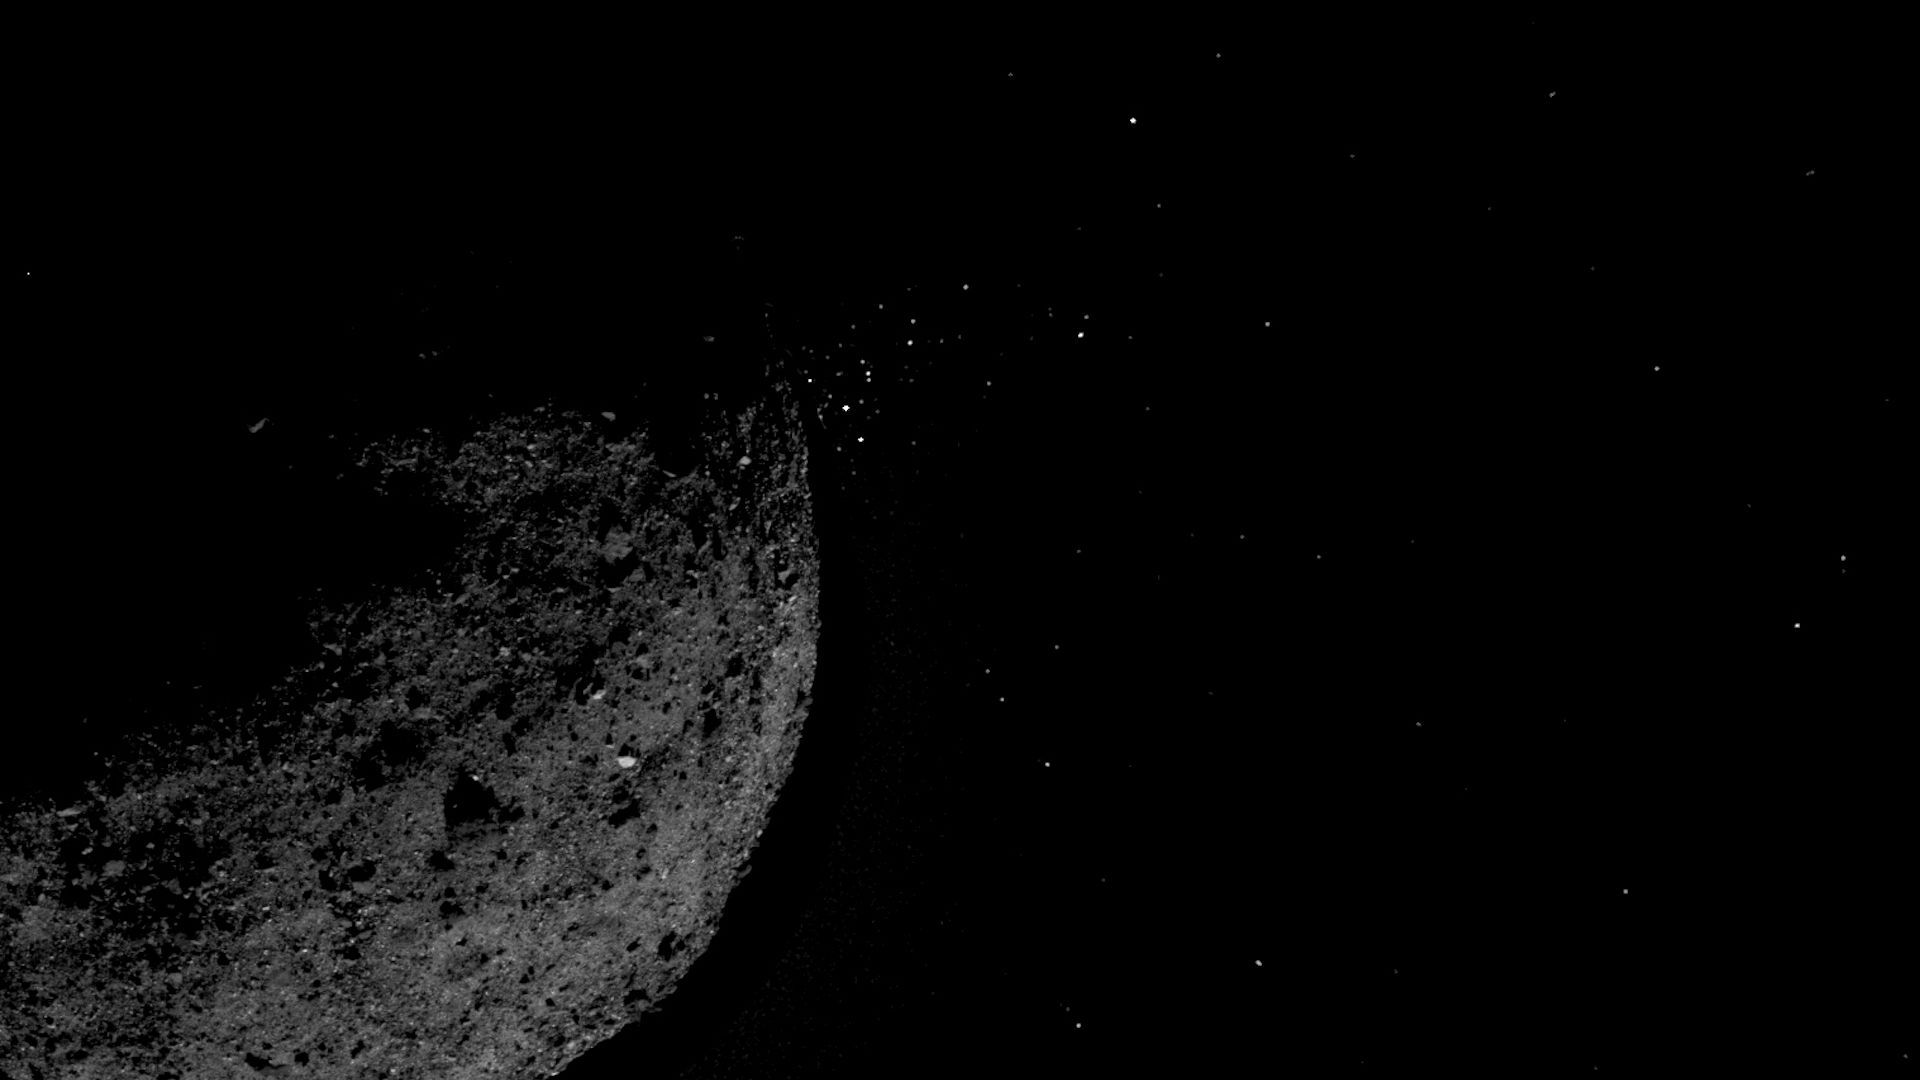 The asteroid Bennu projects particles from its surface.